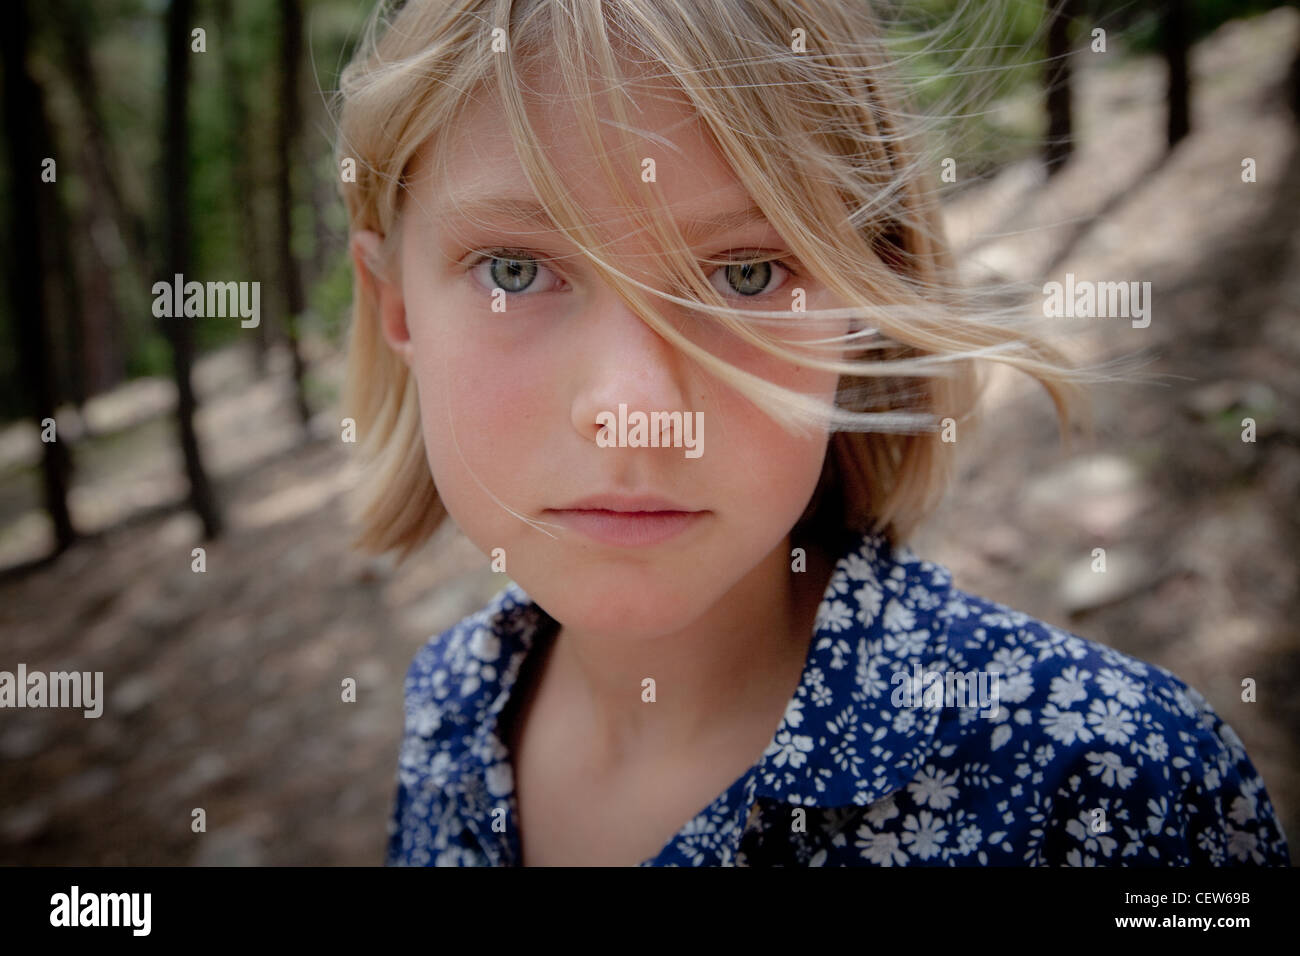 Girl with windblown hair - Stock Image